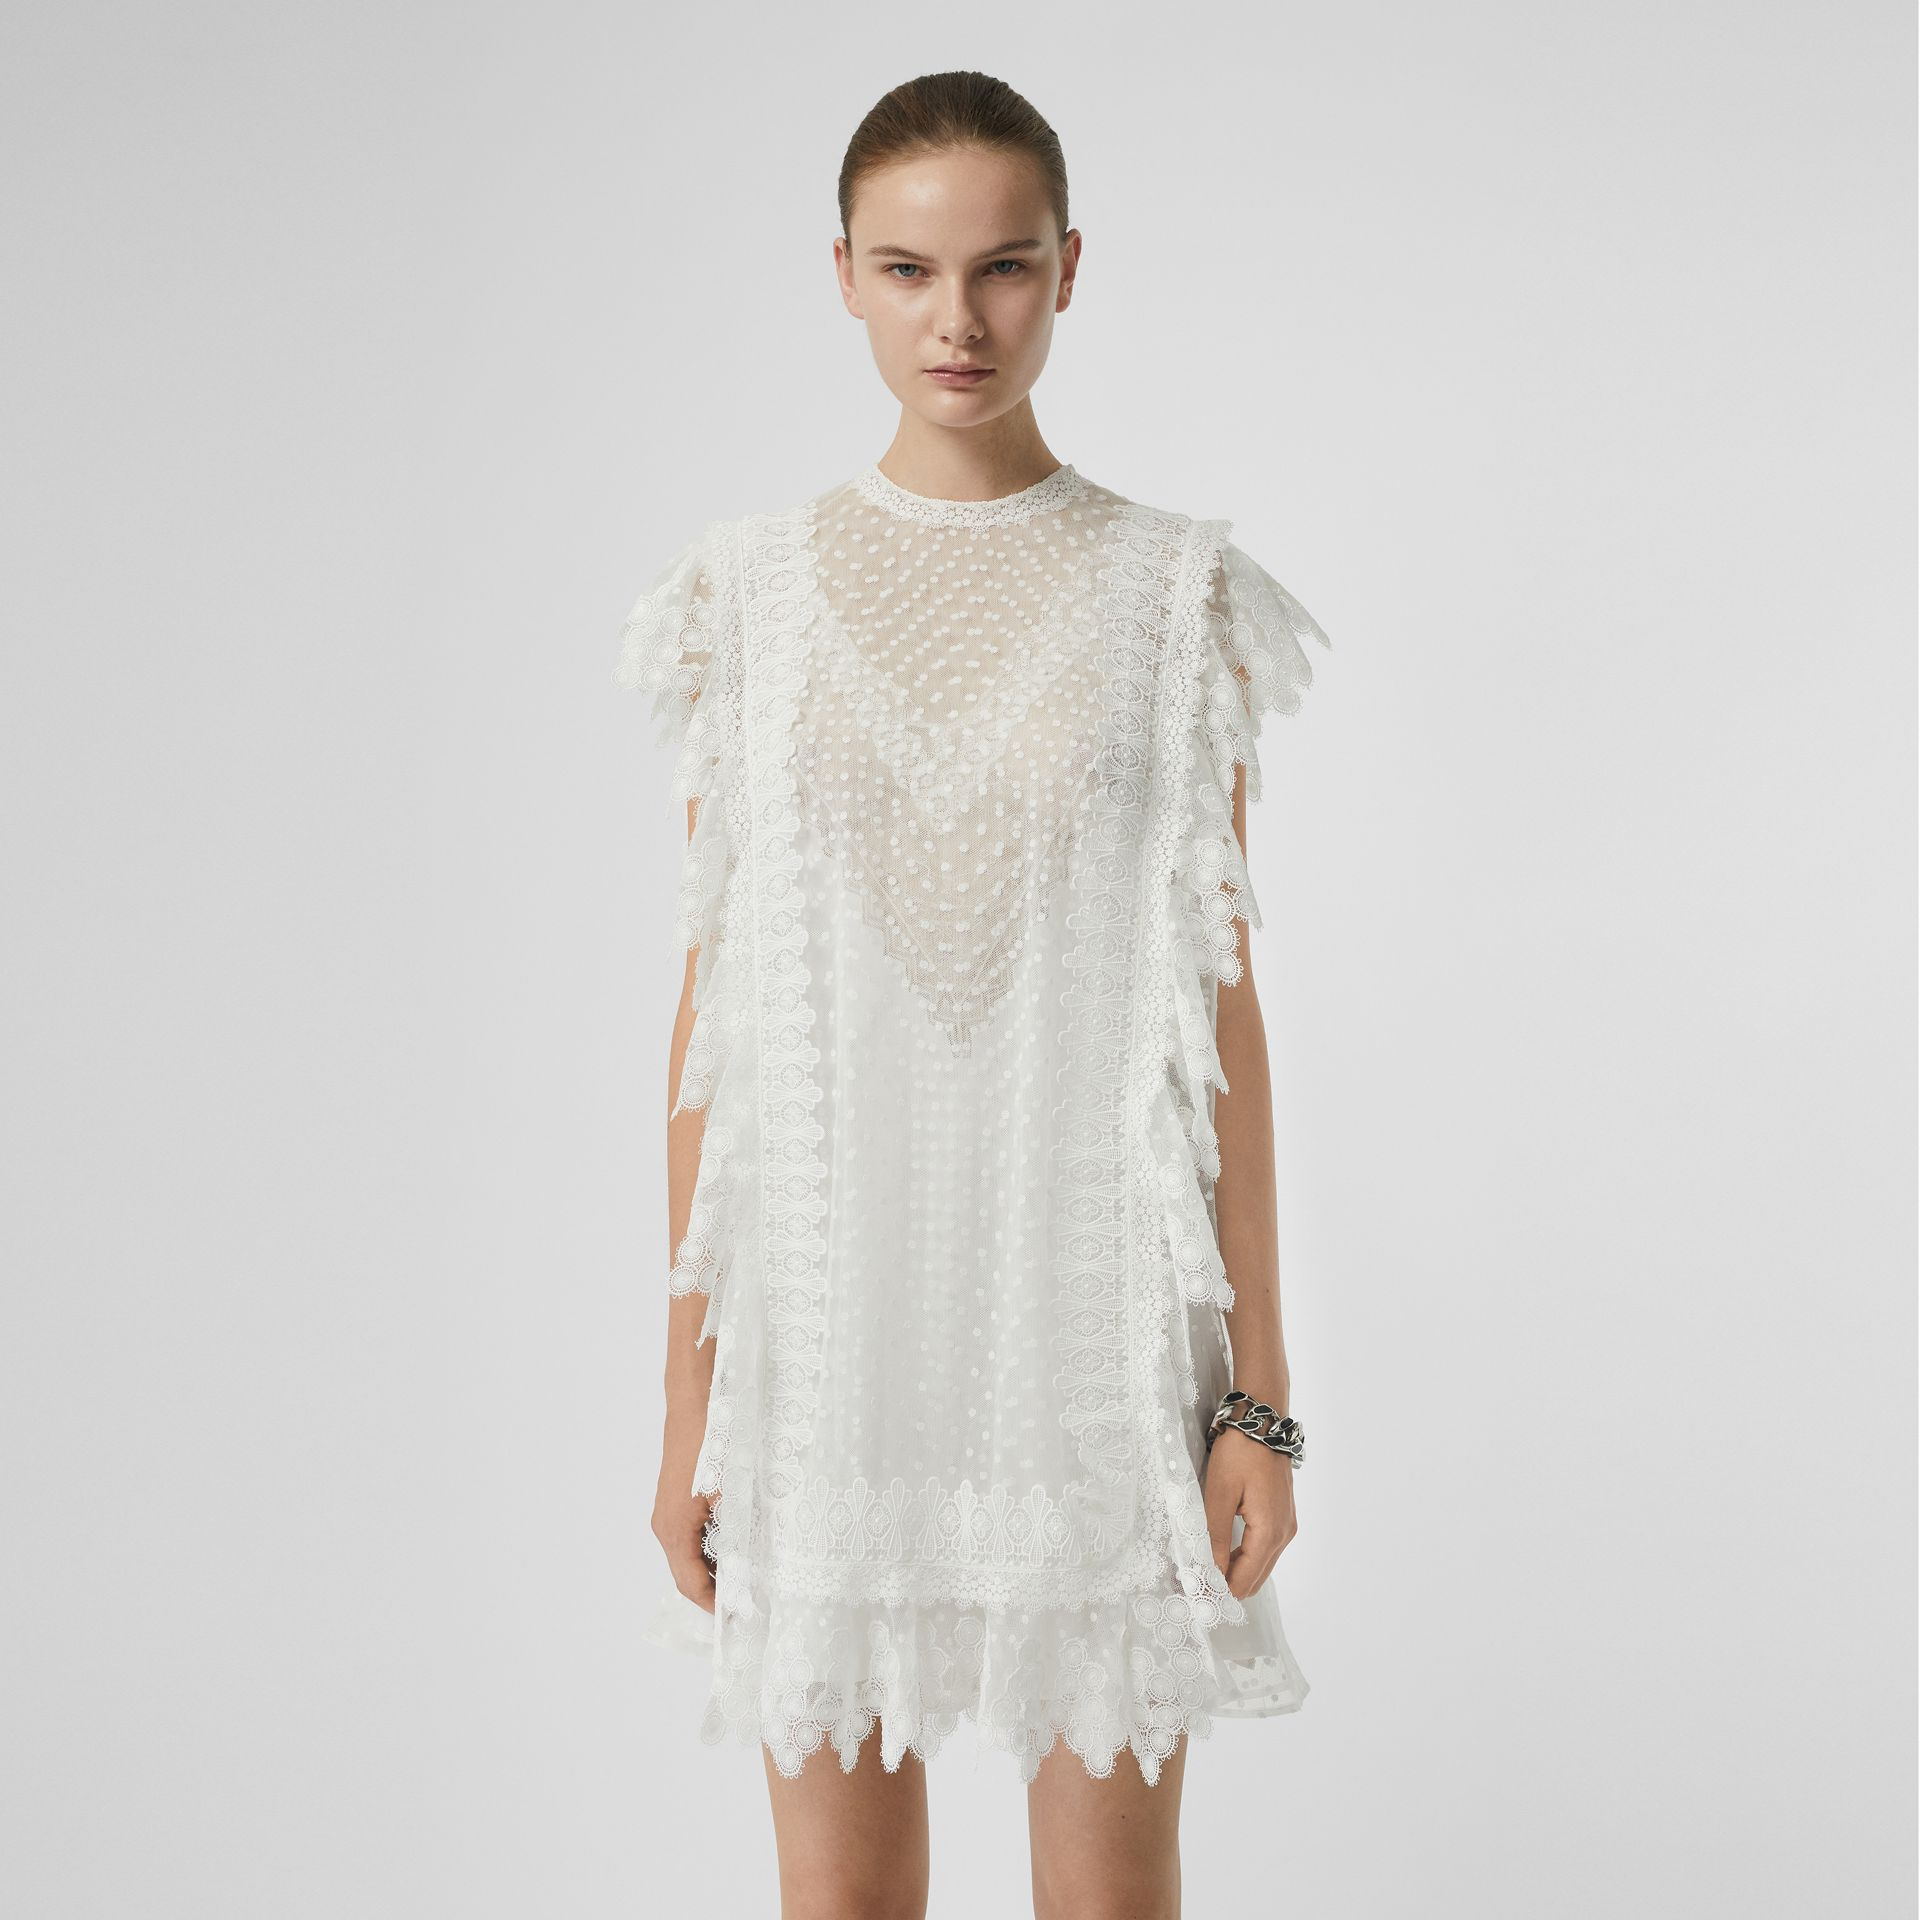 Scalloped Lace and Polka-dot Tulle Dress in White - Women | Burberry Hong Kong S.A.R - gallery image 4